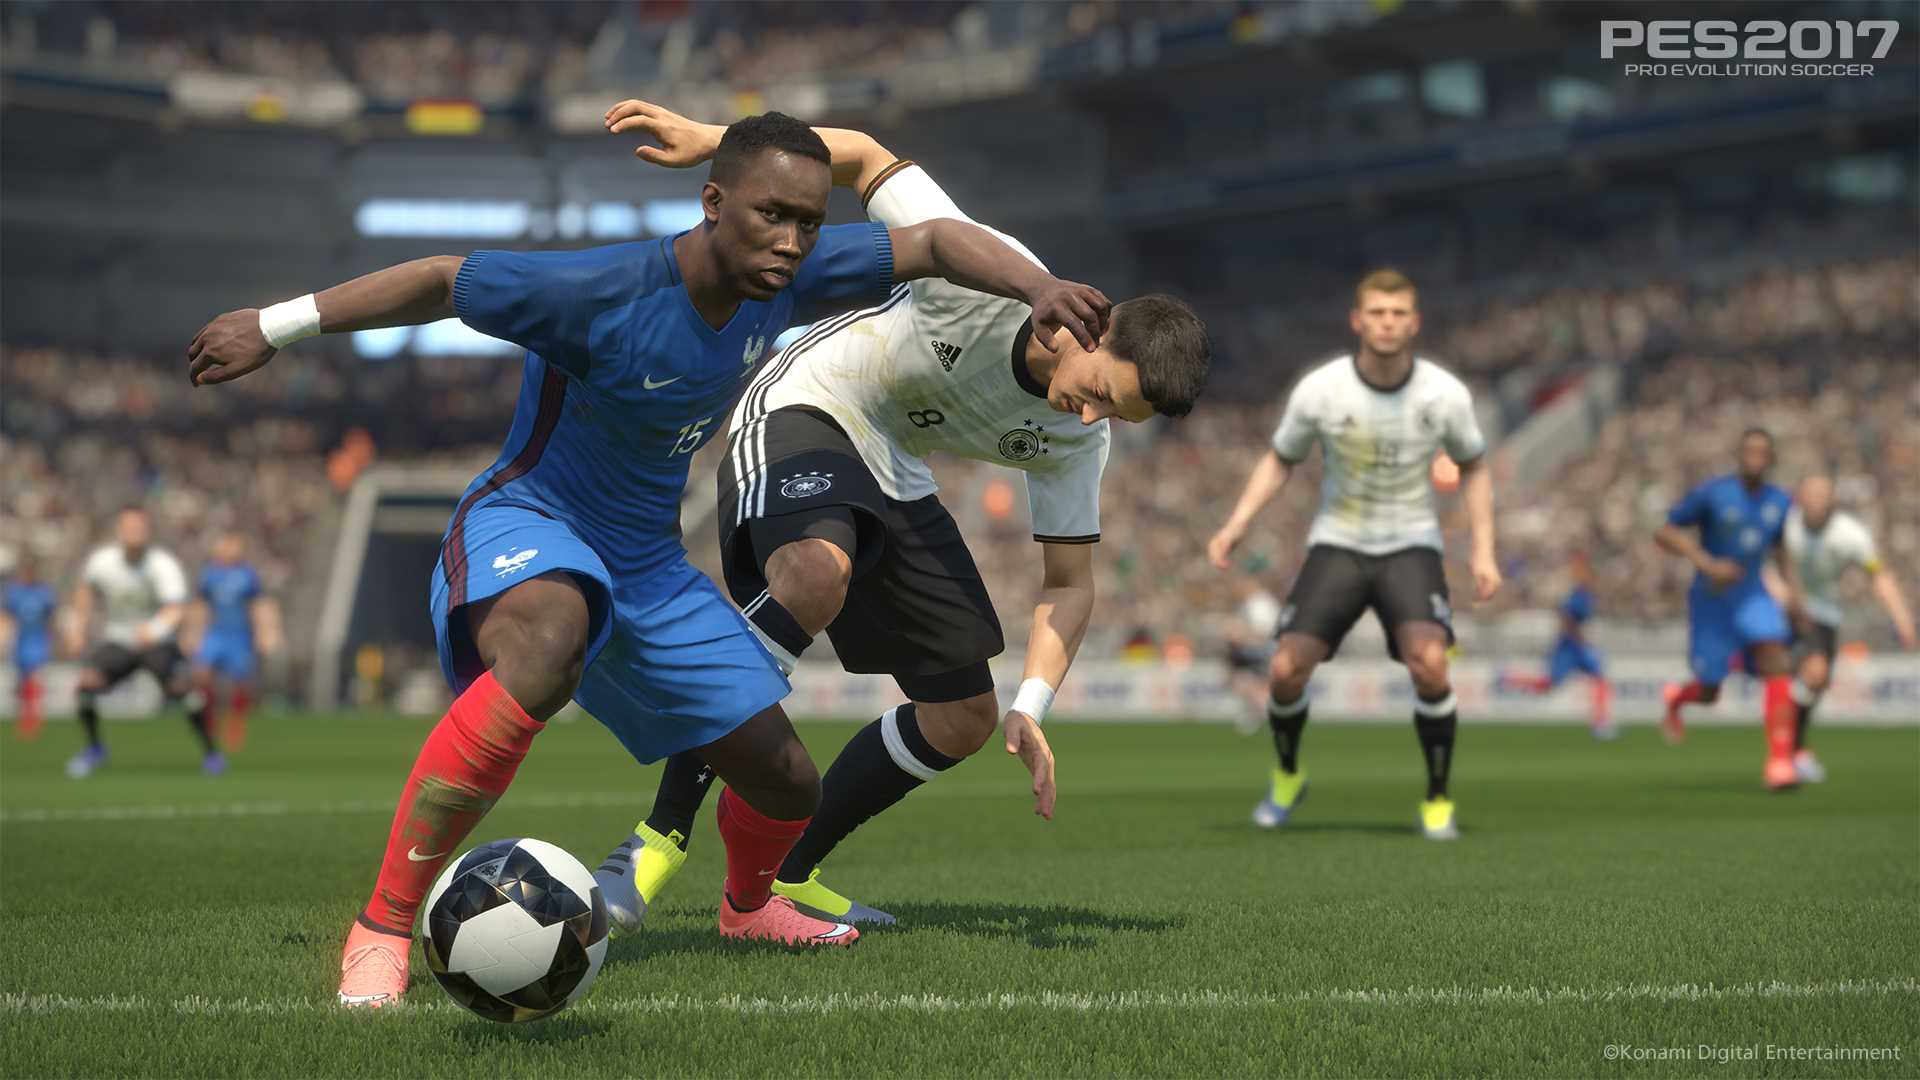 Control Reality: PES 2017 Preview